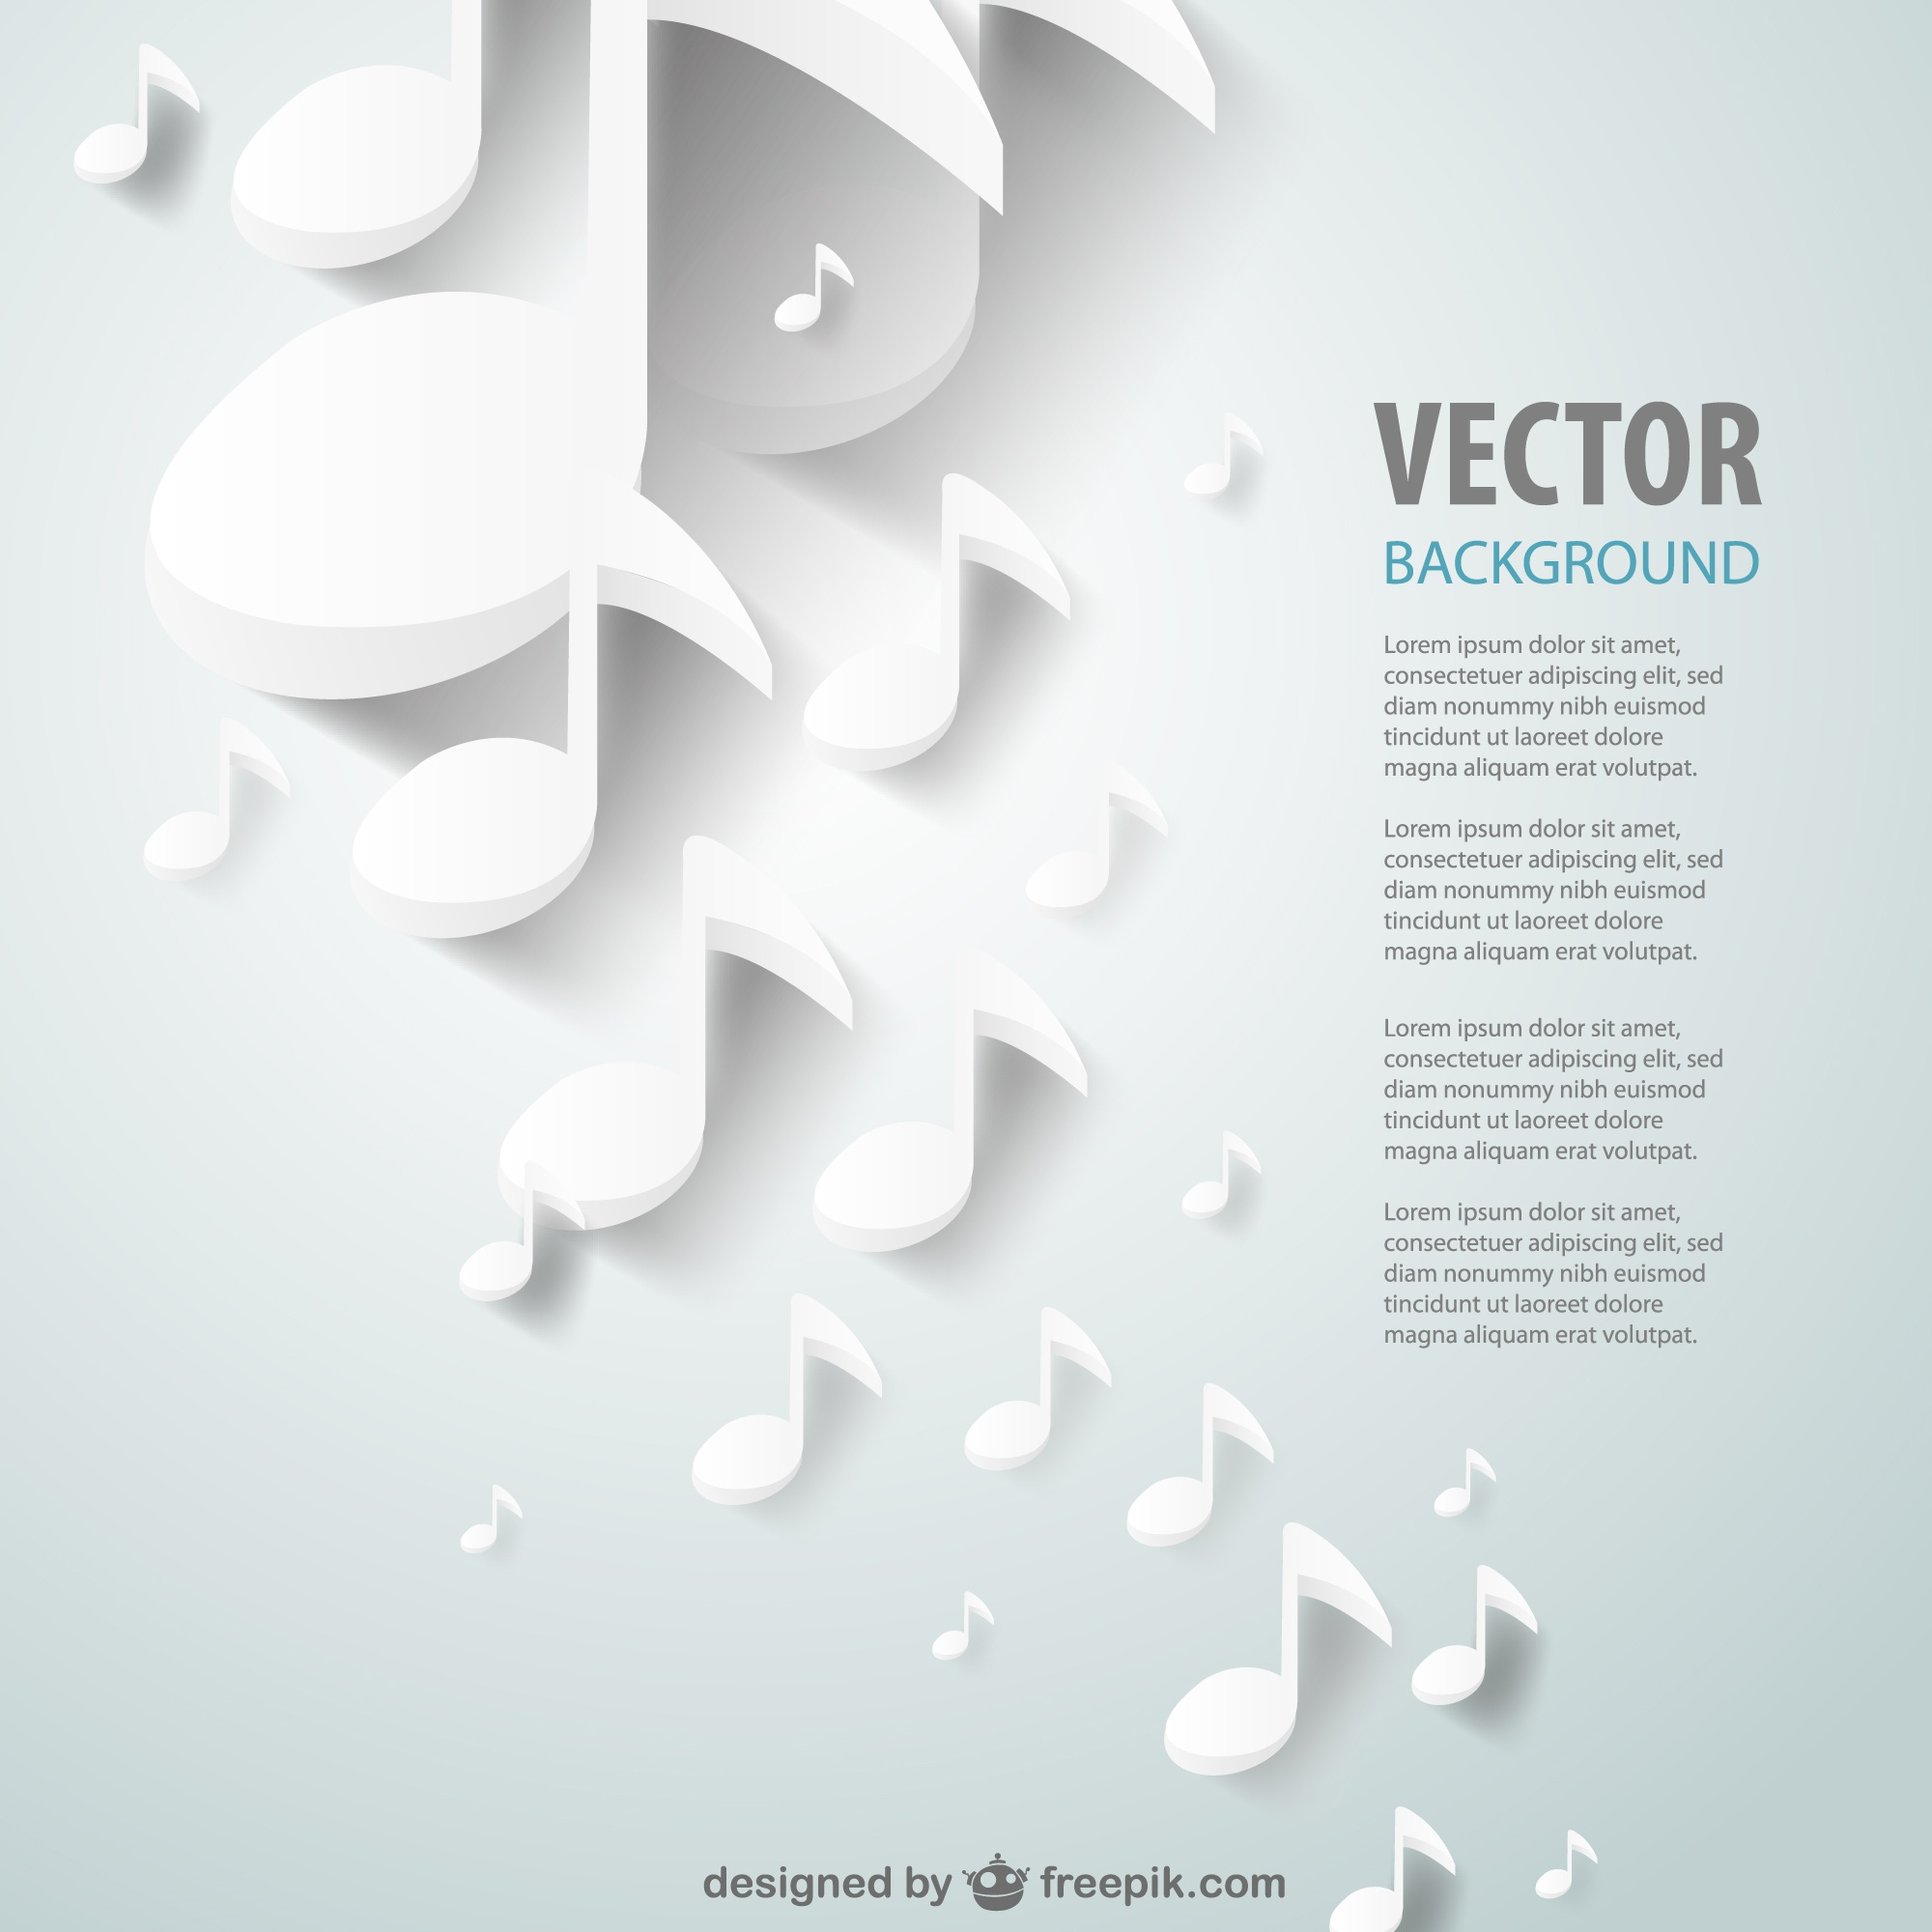 Paper cut out music vector background